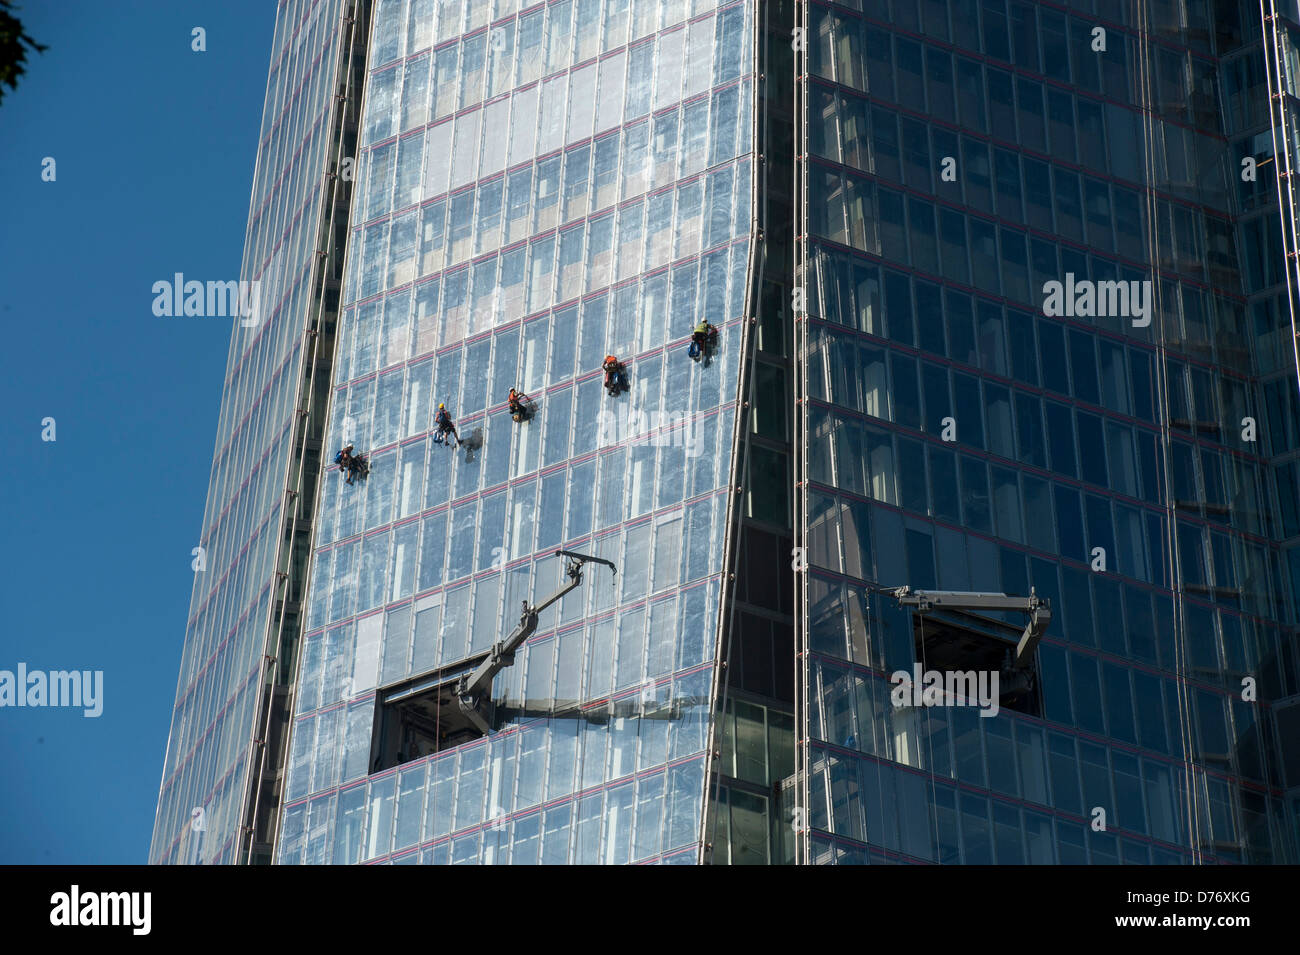 five abseiling window cleaners The Shard dangling Stock Photo